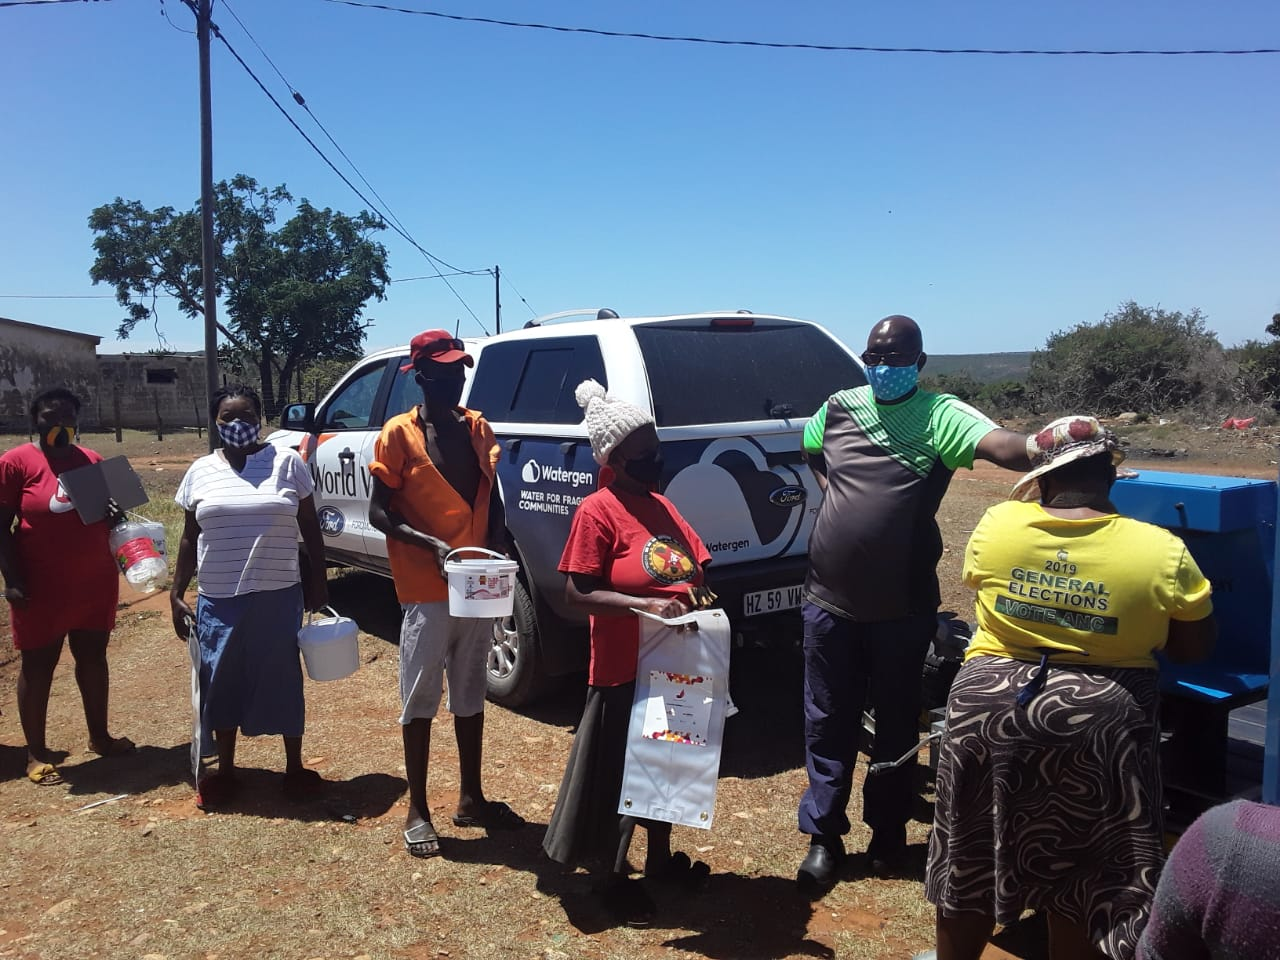 Watergen continues to Bring Clean Drinking Water to Drought-Stricken South African Community